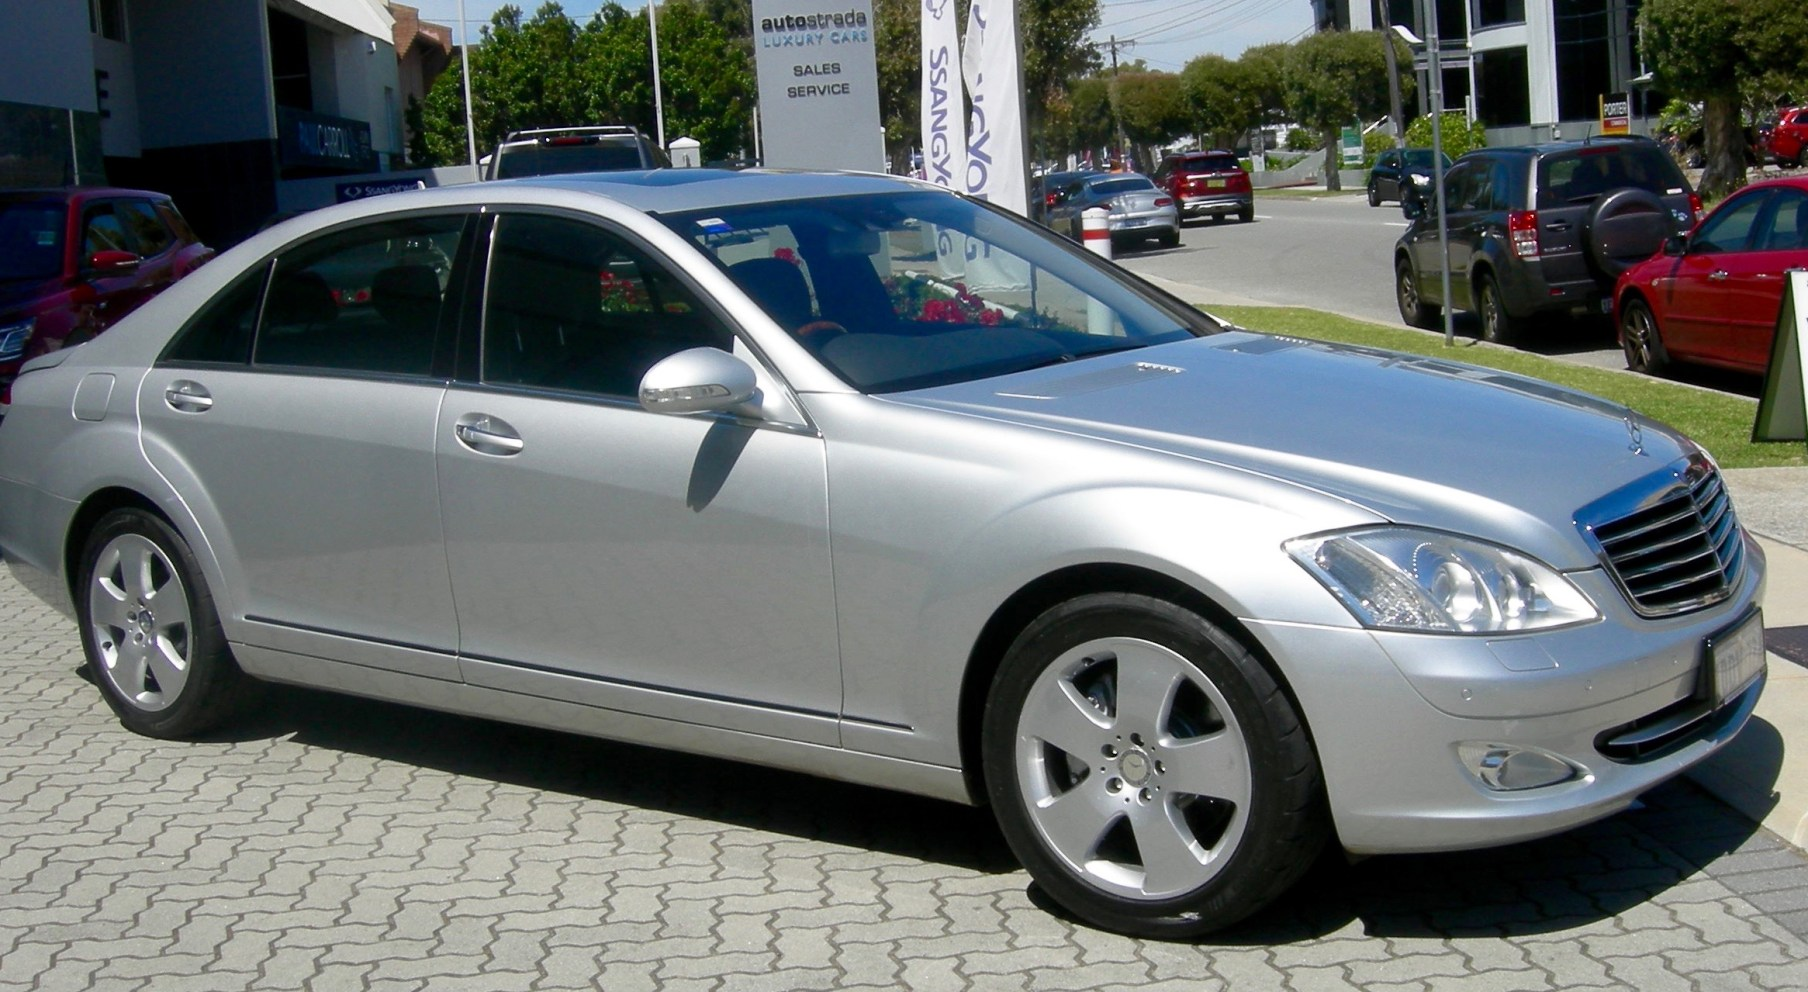 Mercedes Benz S-Class S500 for sale in Perth